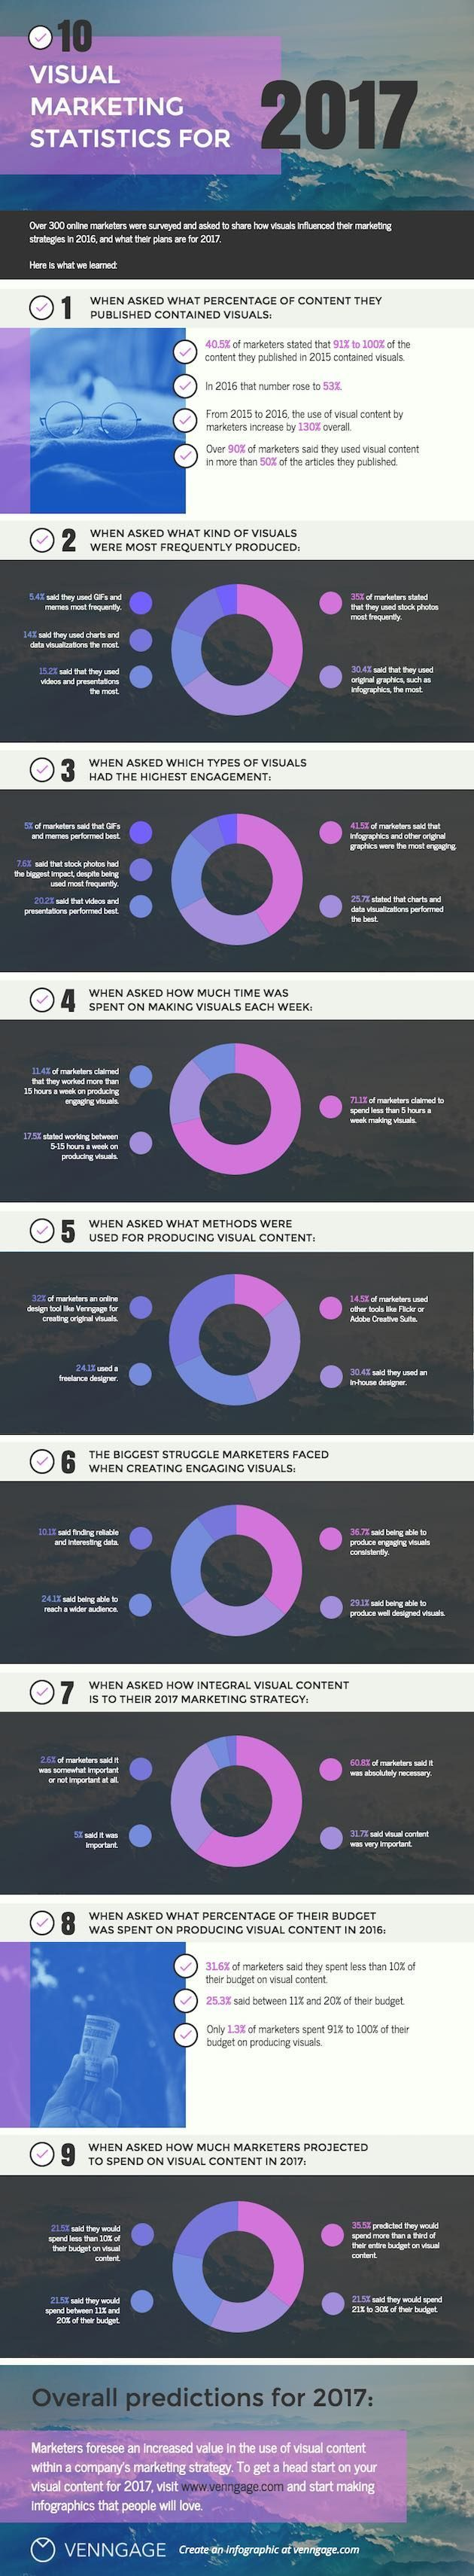 Sale Associate Resume%0A How Digital Marketers Are Using Visual Content  Infographic